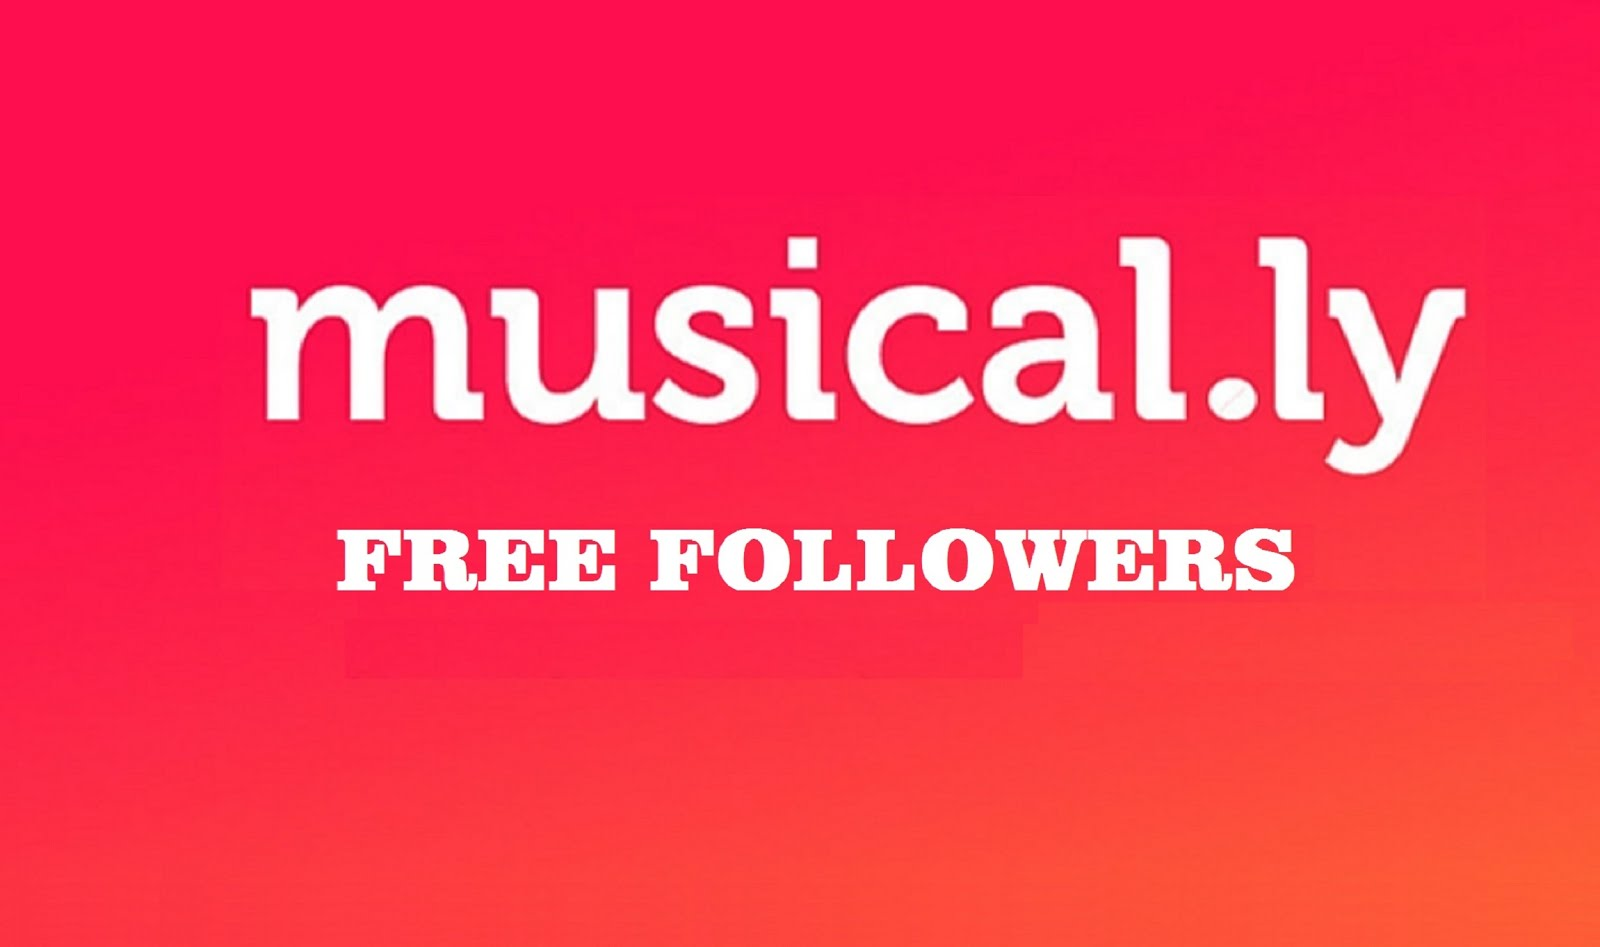 Musically-Followers-Free-online-and-likes